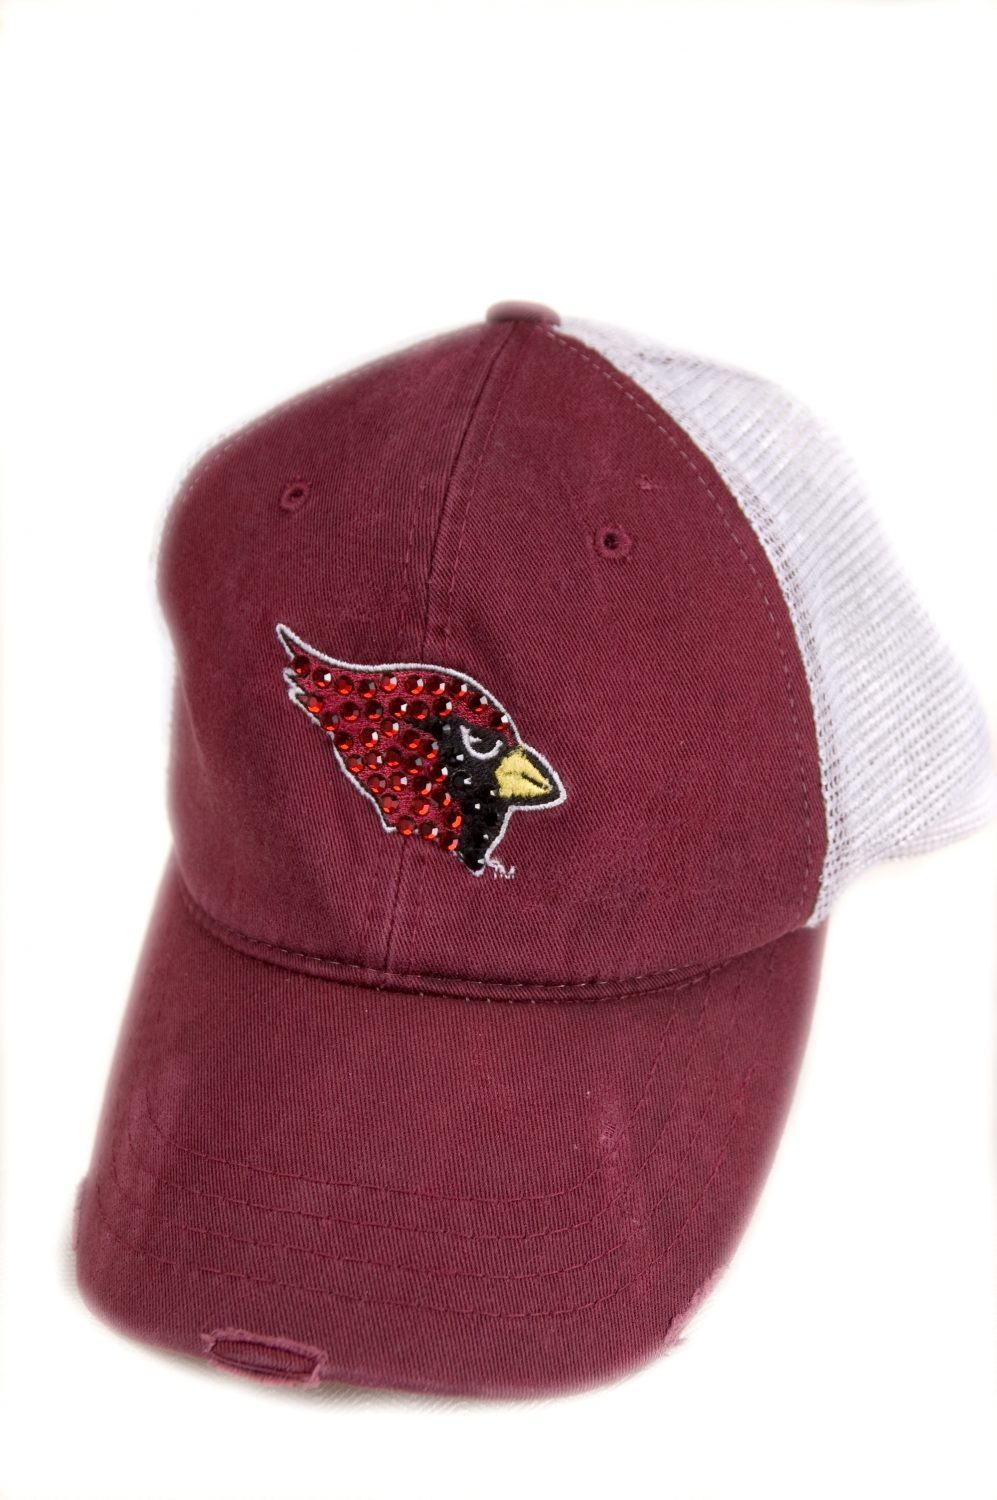 cardinals-bling-hat